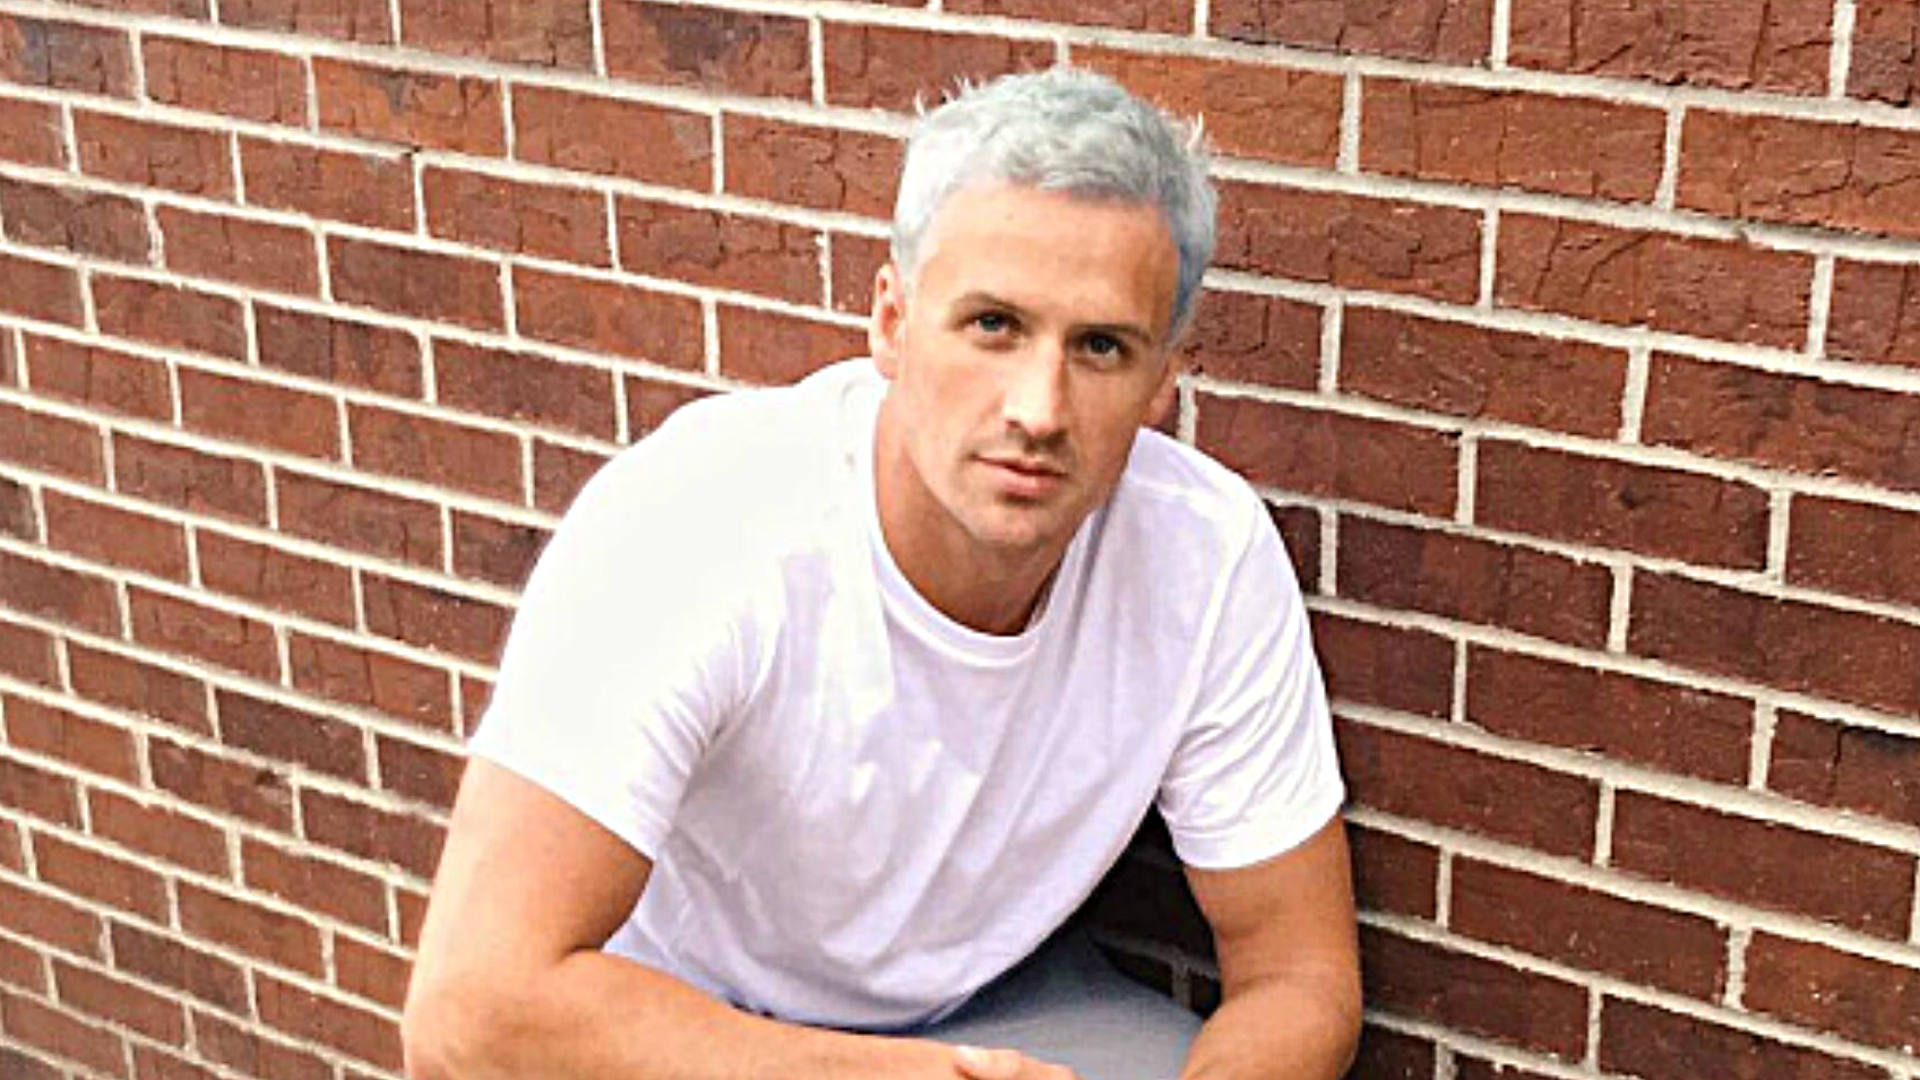 Rio Olympics 2016 Ryan Lochte Sporting Radically Different Hairstyle For